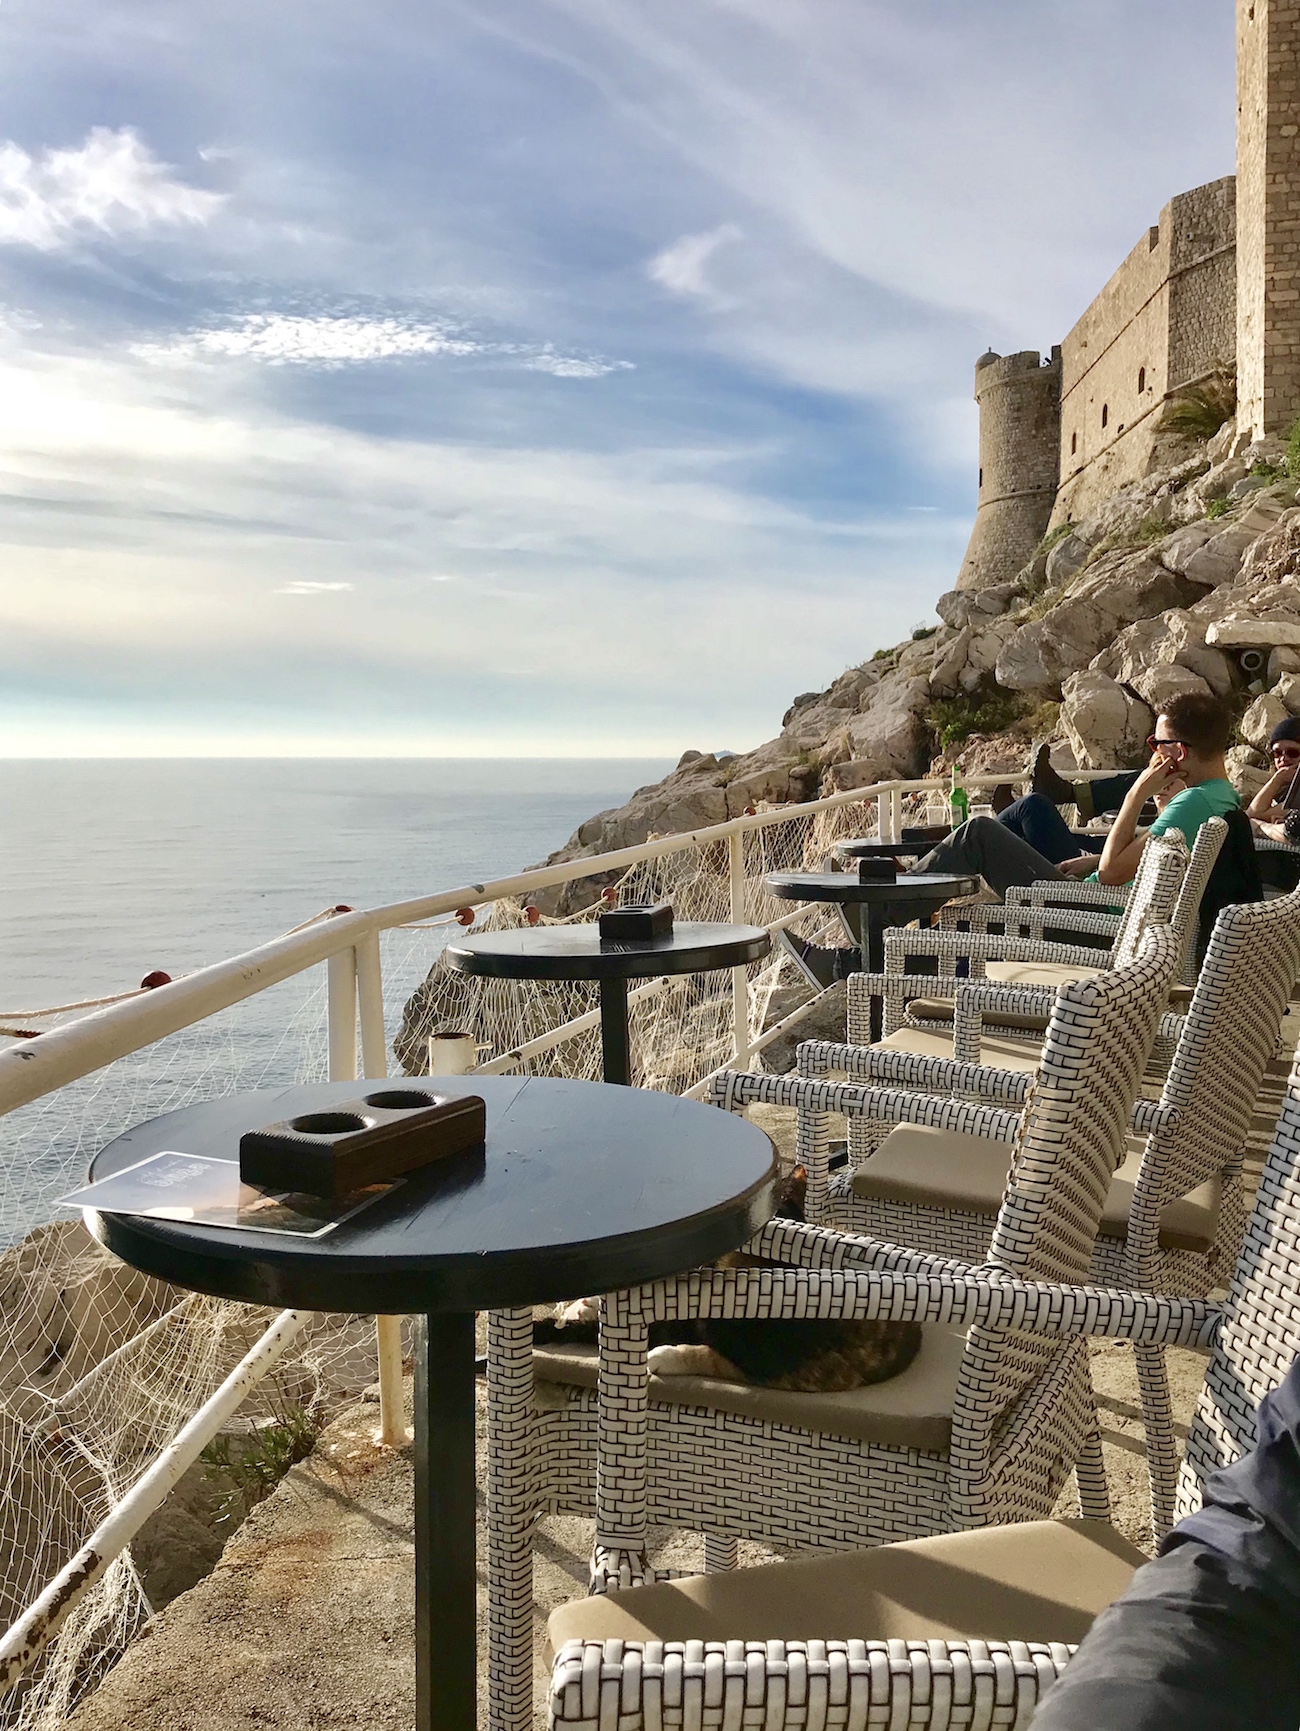 Winter visit to Dubrovnik, Croatia's Buza Bar